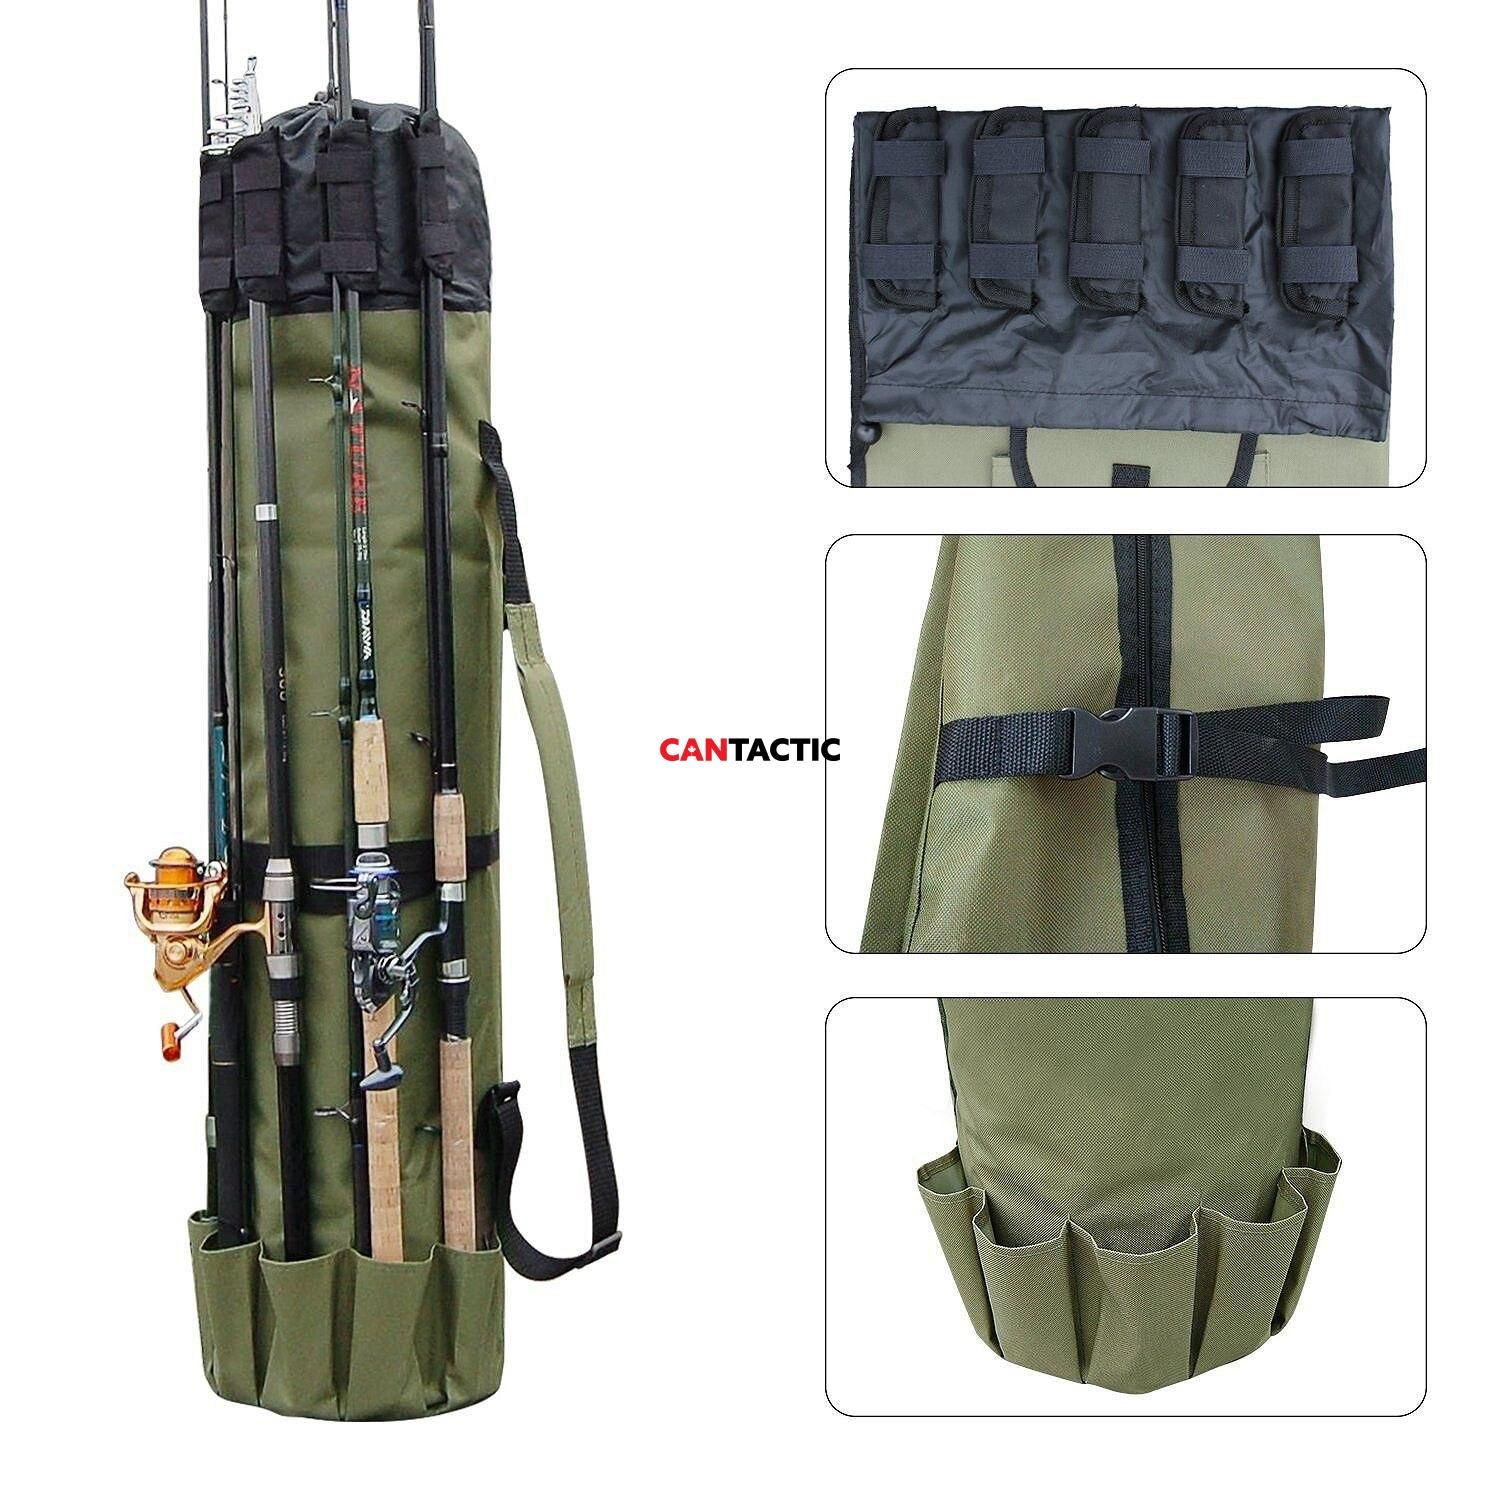 Multifunction Fishing Rod Storage Case Canvas Reel Organizer Travel Carry Pole Tools Bag